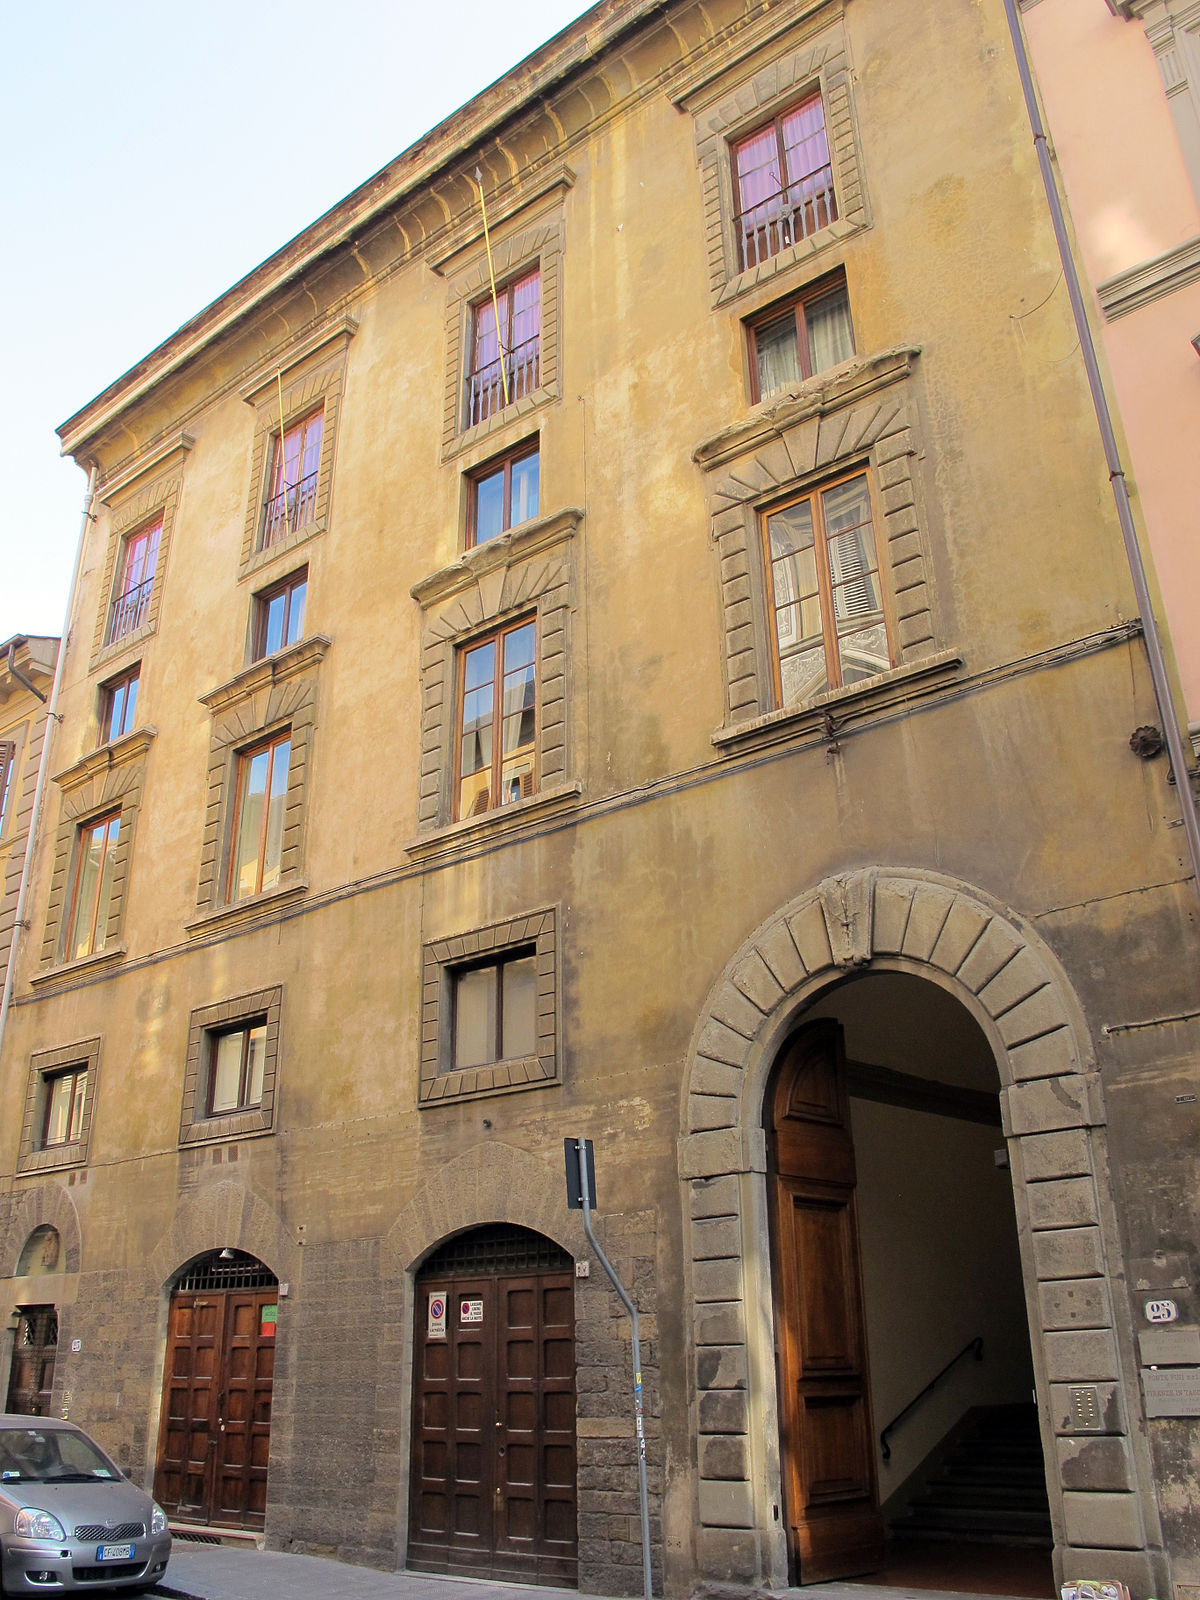 78 Images About Temperance On Pinterest: Palazzo Ricasoli Scroffa